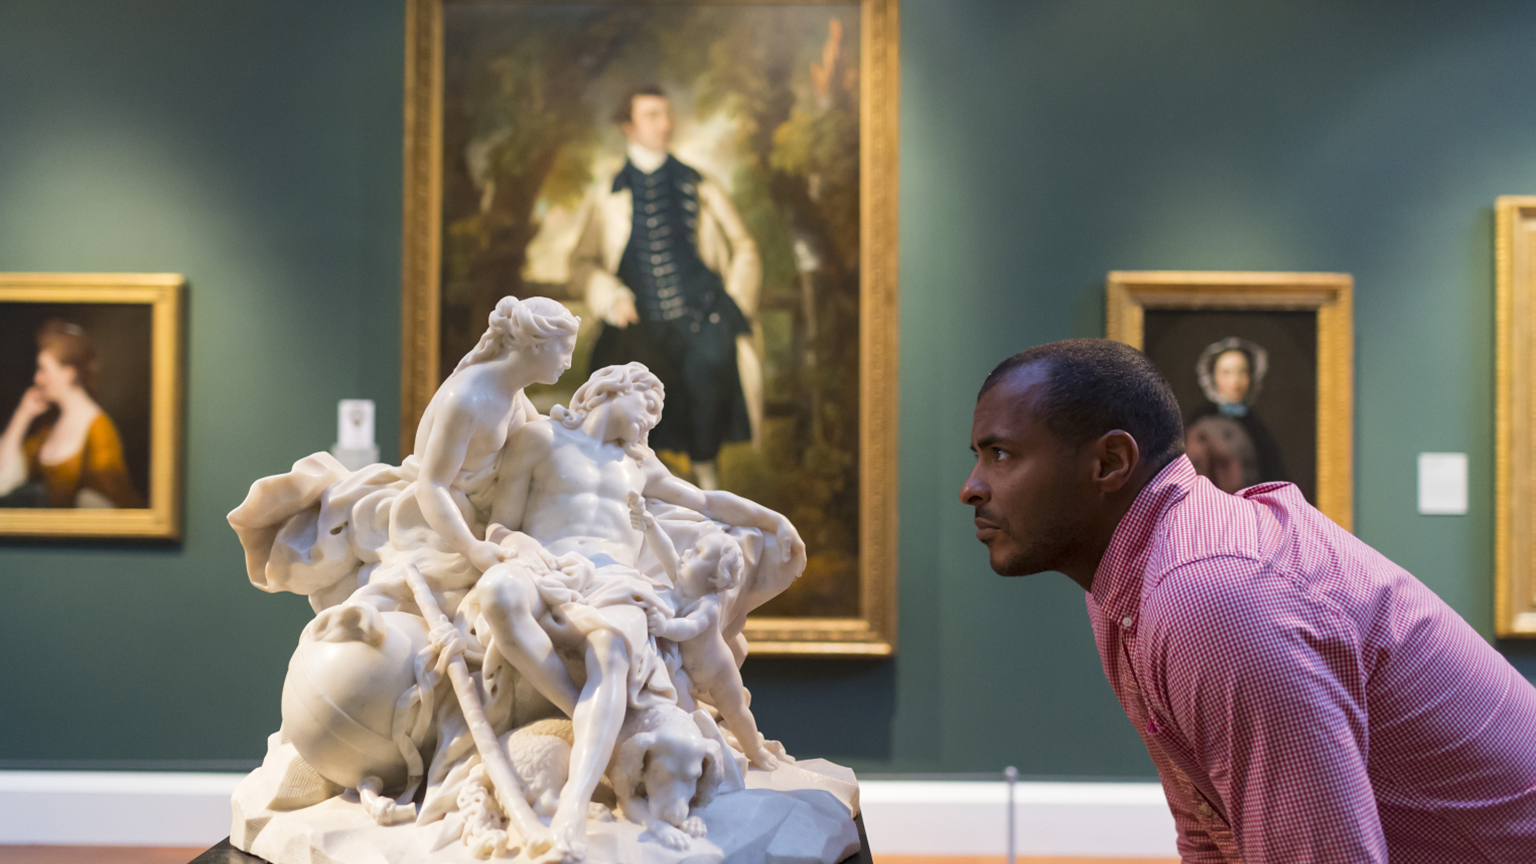 Sculpture in the Holburne Picture Gallery